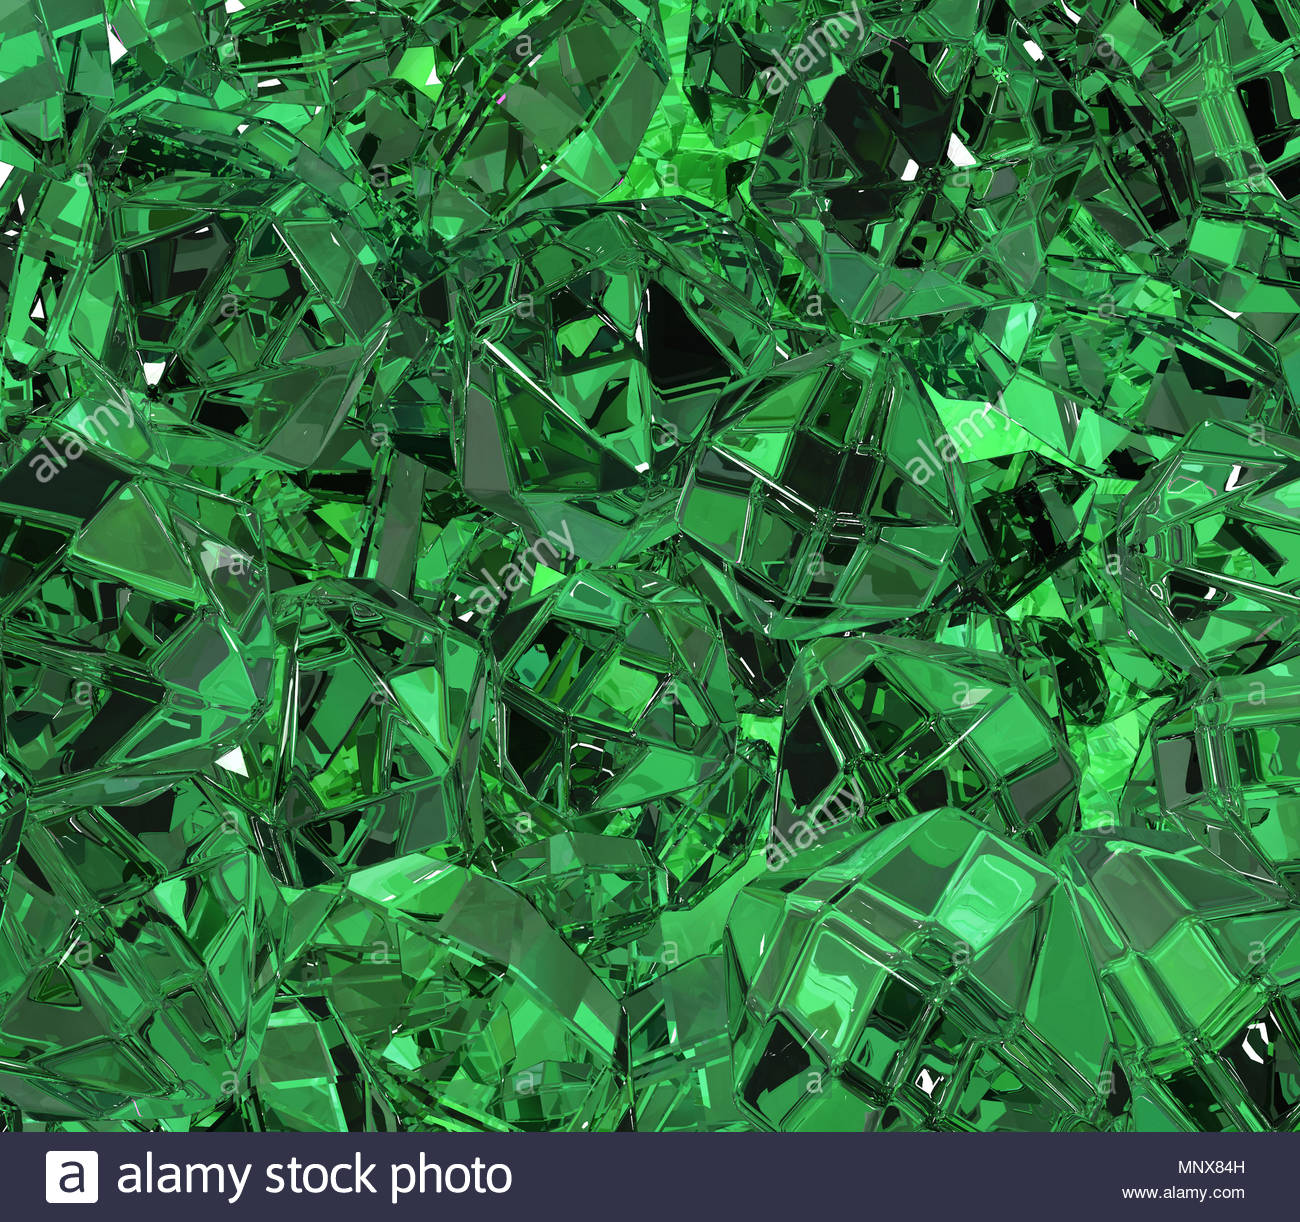 Emerald green material surface abstract 3d illustration 1300x1222